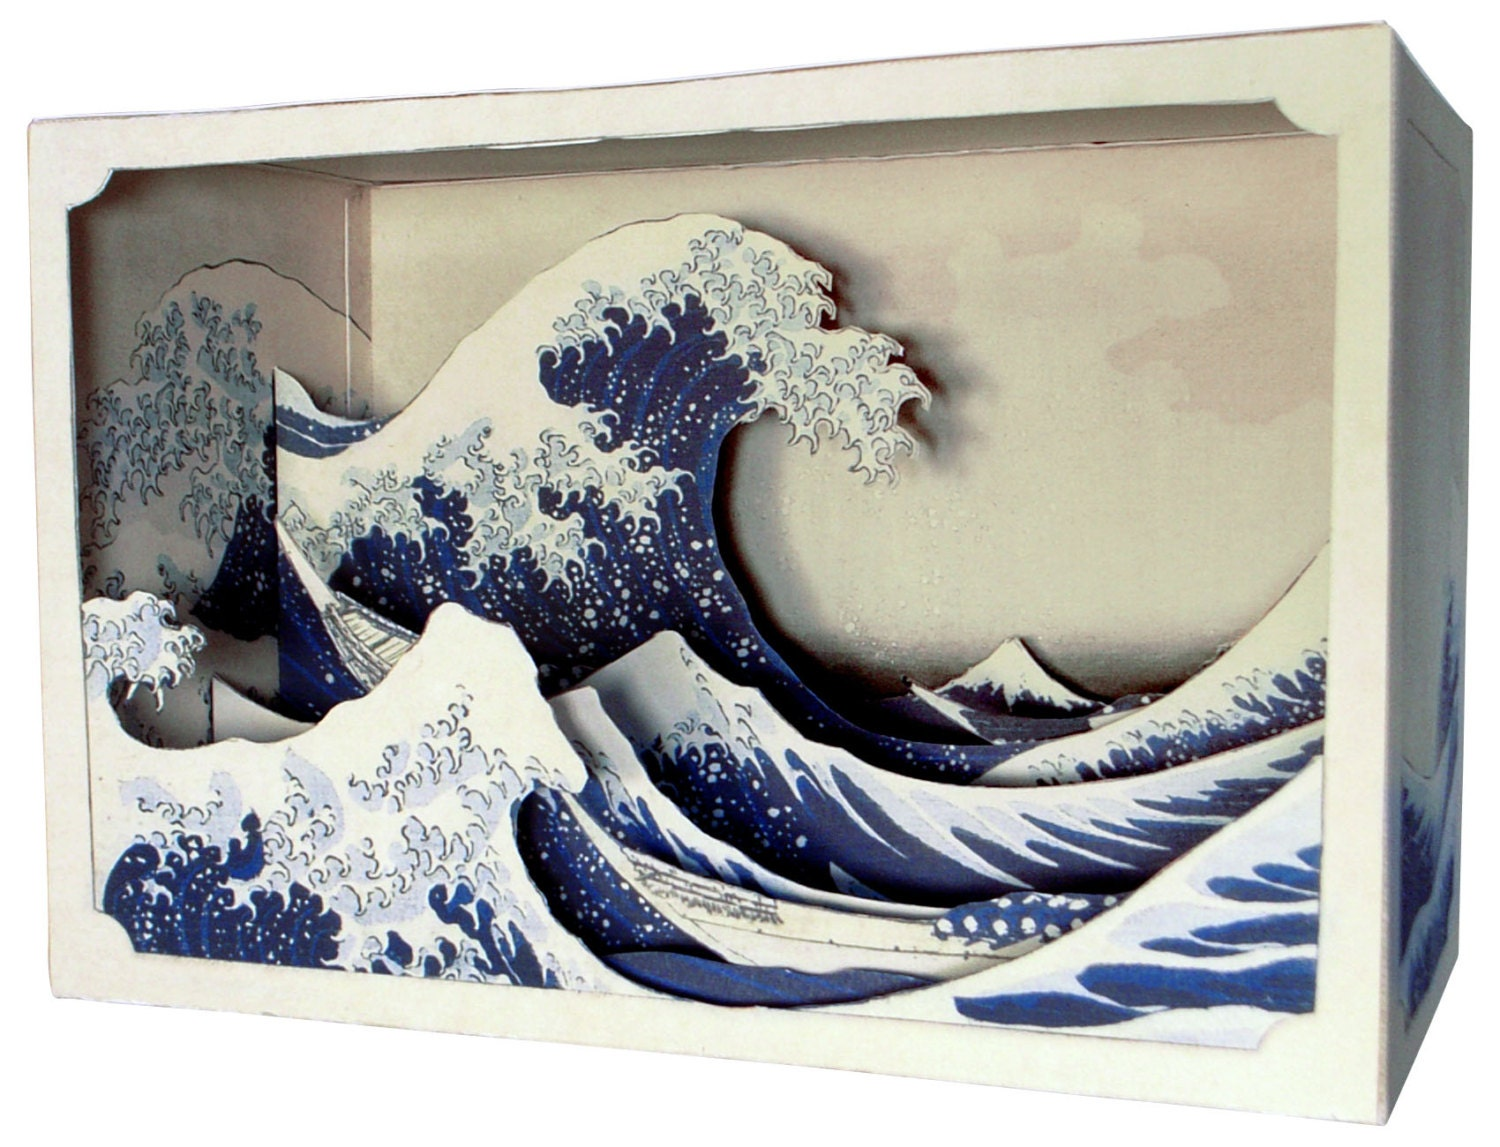 Diy paper diorama hokusai the great wave off kanagawa for Diy 3d art